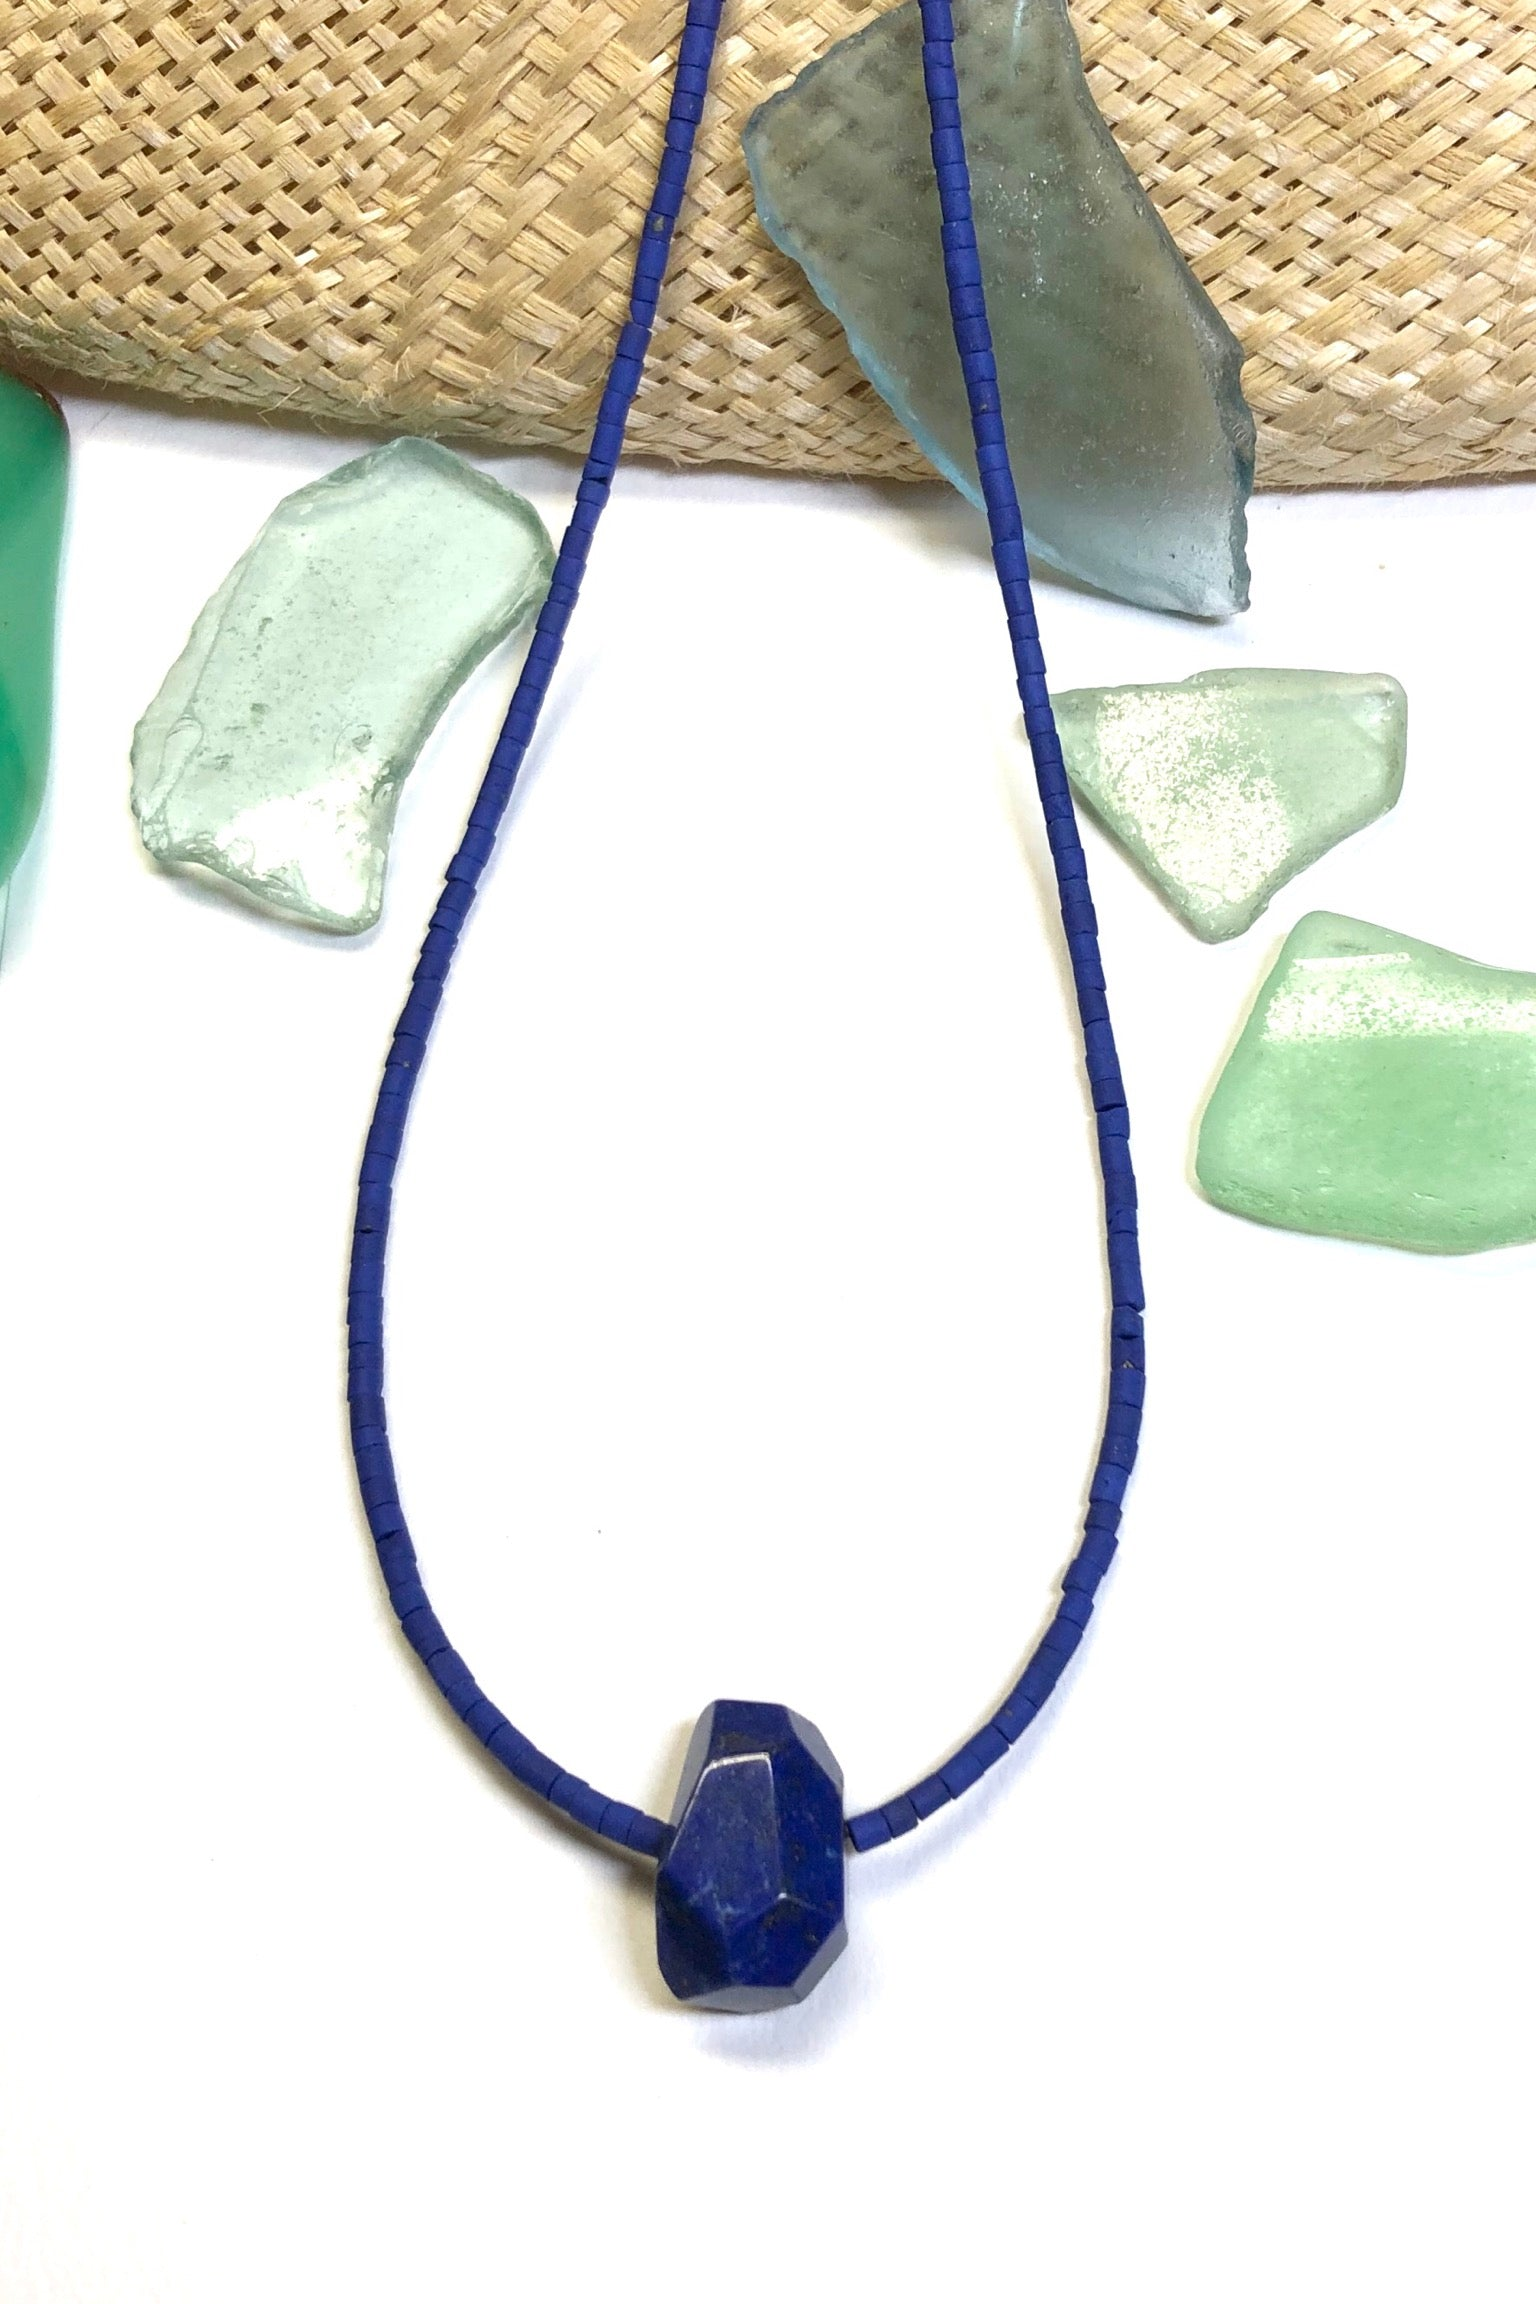 The Necklace Cay Lapis Lazuli has a central pendant which is a hand cut and faceted from deep cobalt blue stone with matching blue natural Afghan tiny seed beads.